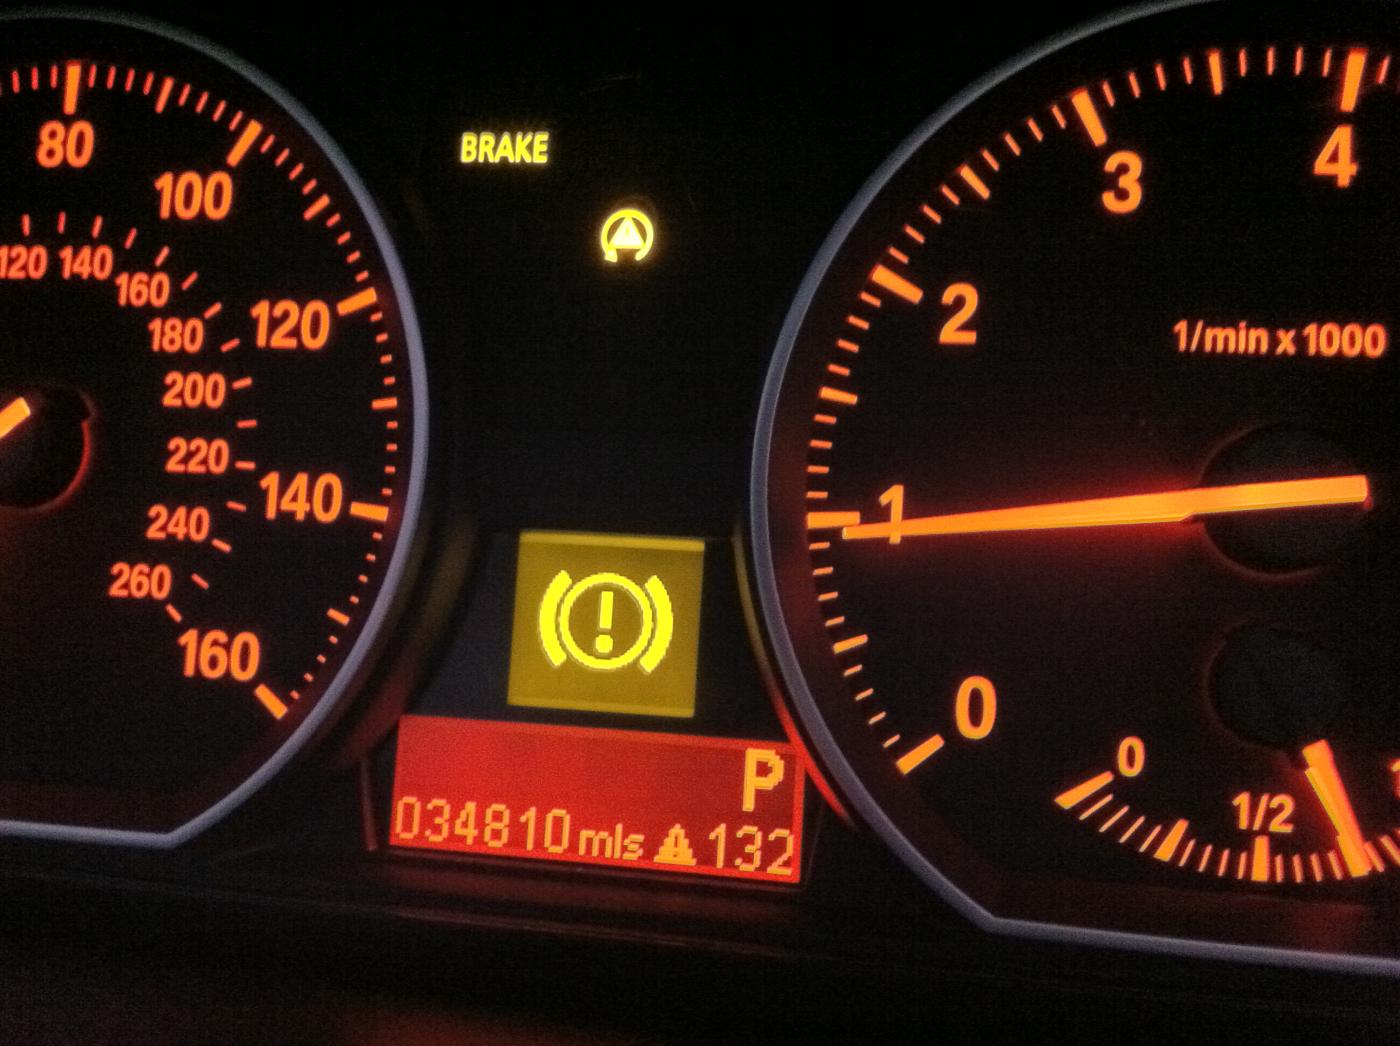 Bmw Warning Lights E90 >> 2007 Bmw 335i Dash Warning Lights.html | Autos Post